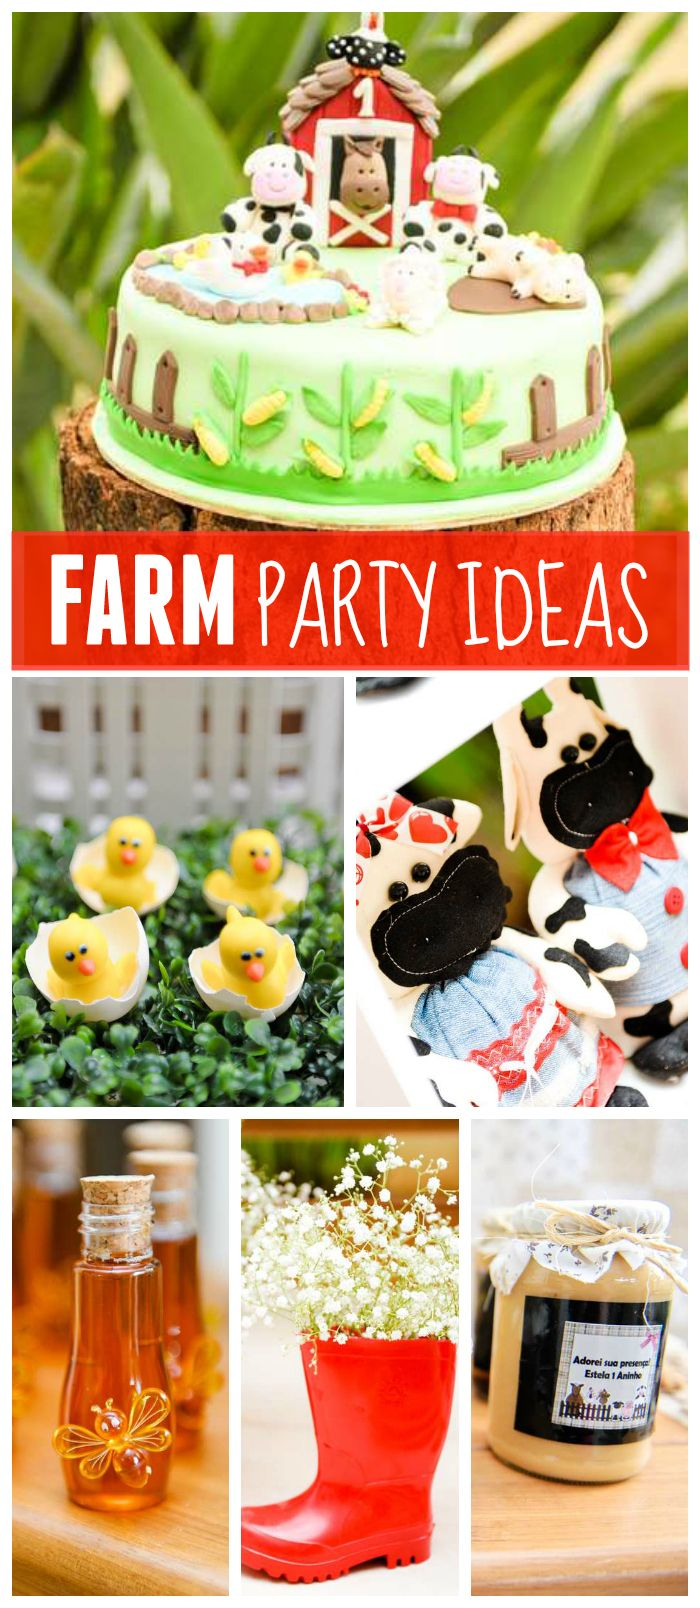 A farm boy birthday party with a fun barnyard cake and honeybee jar party favors!